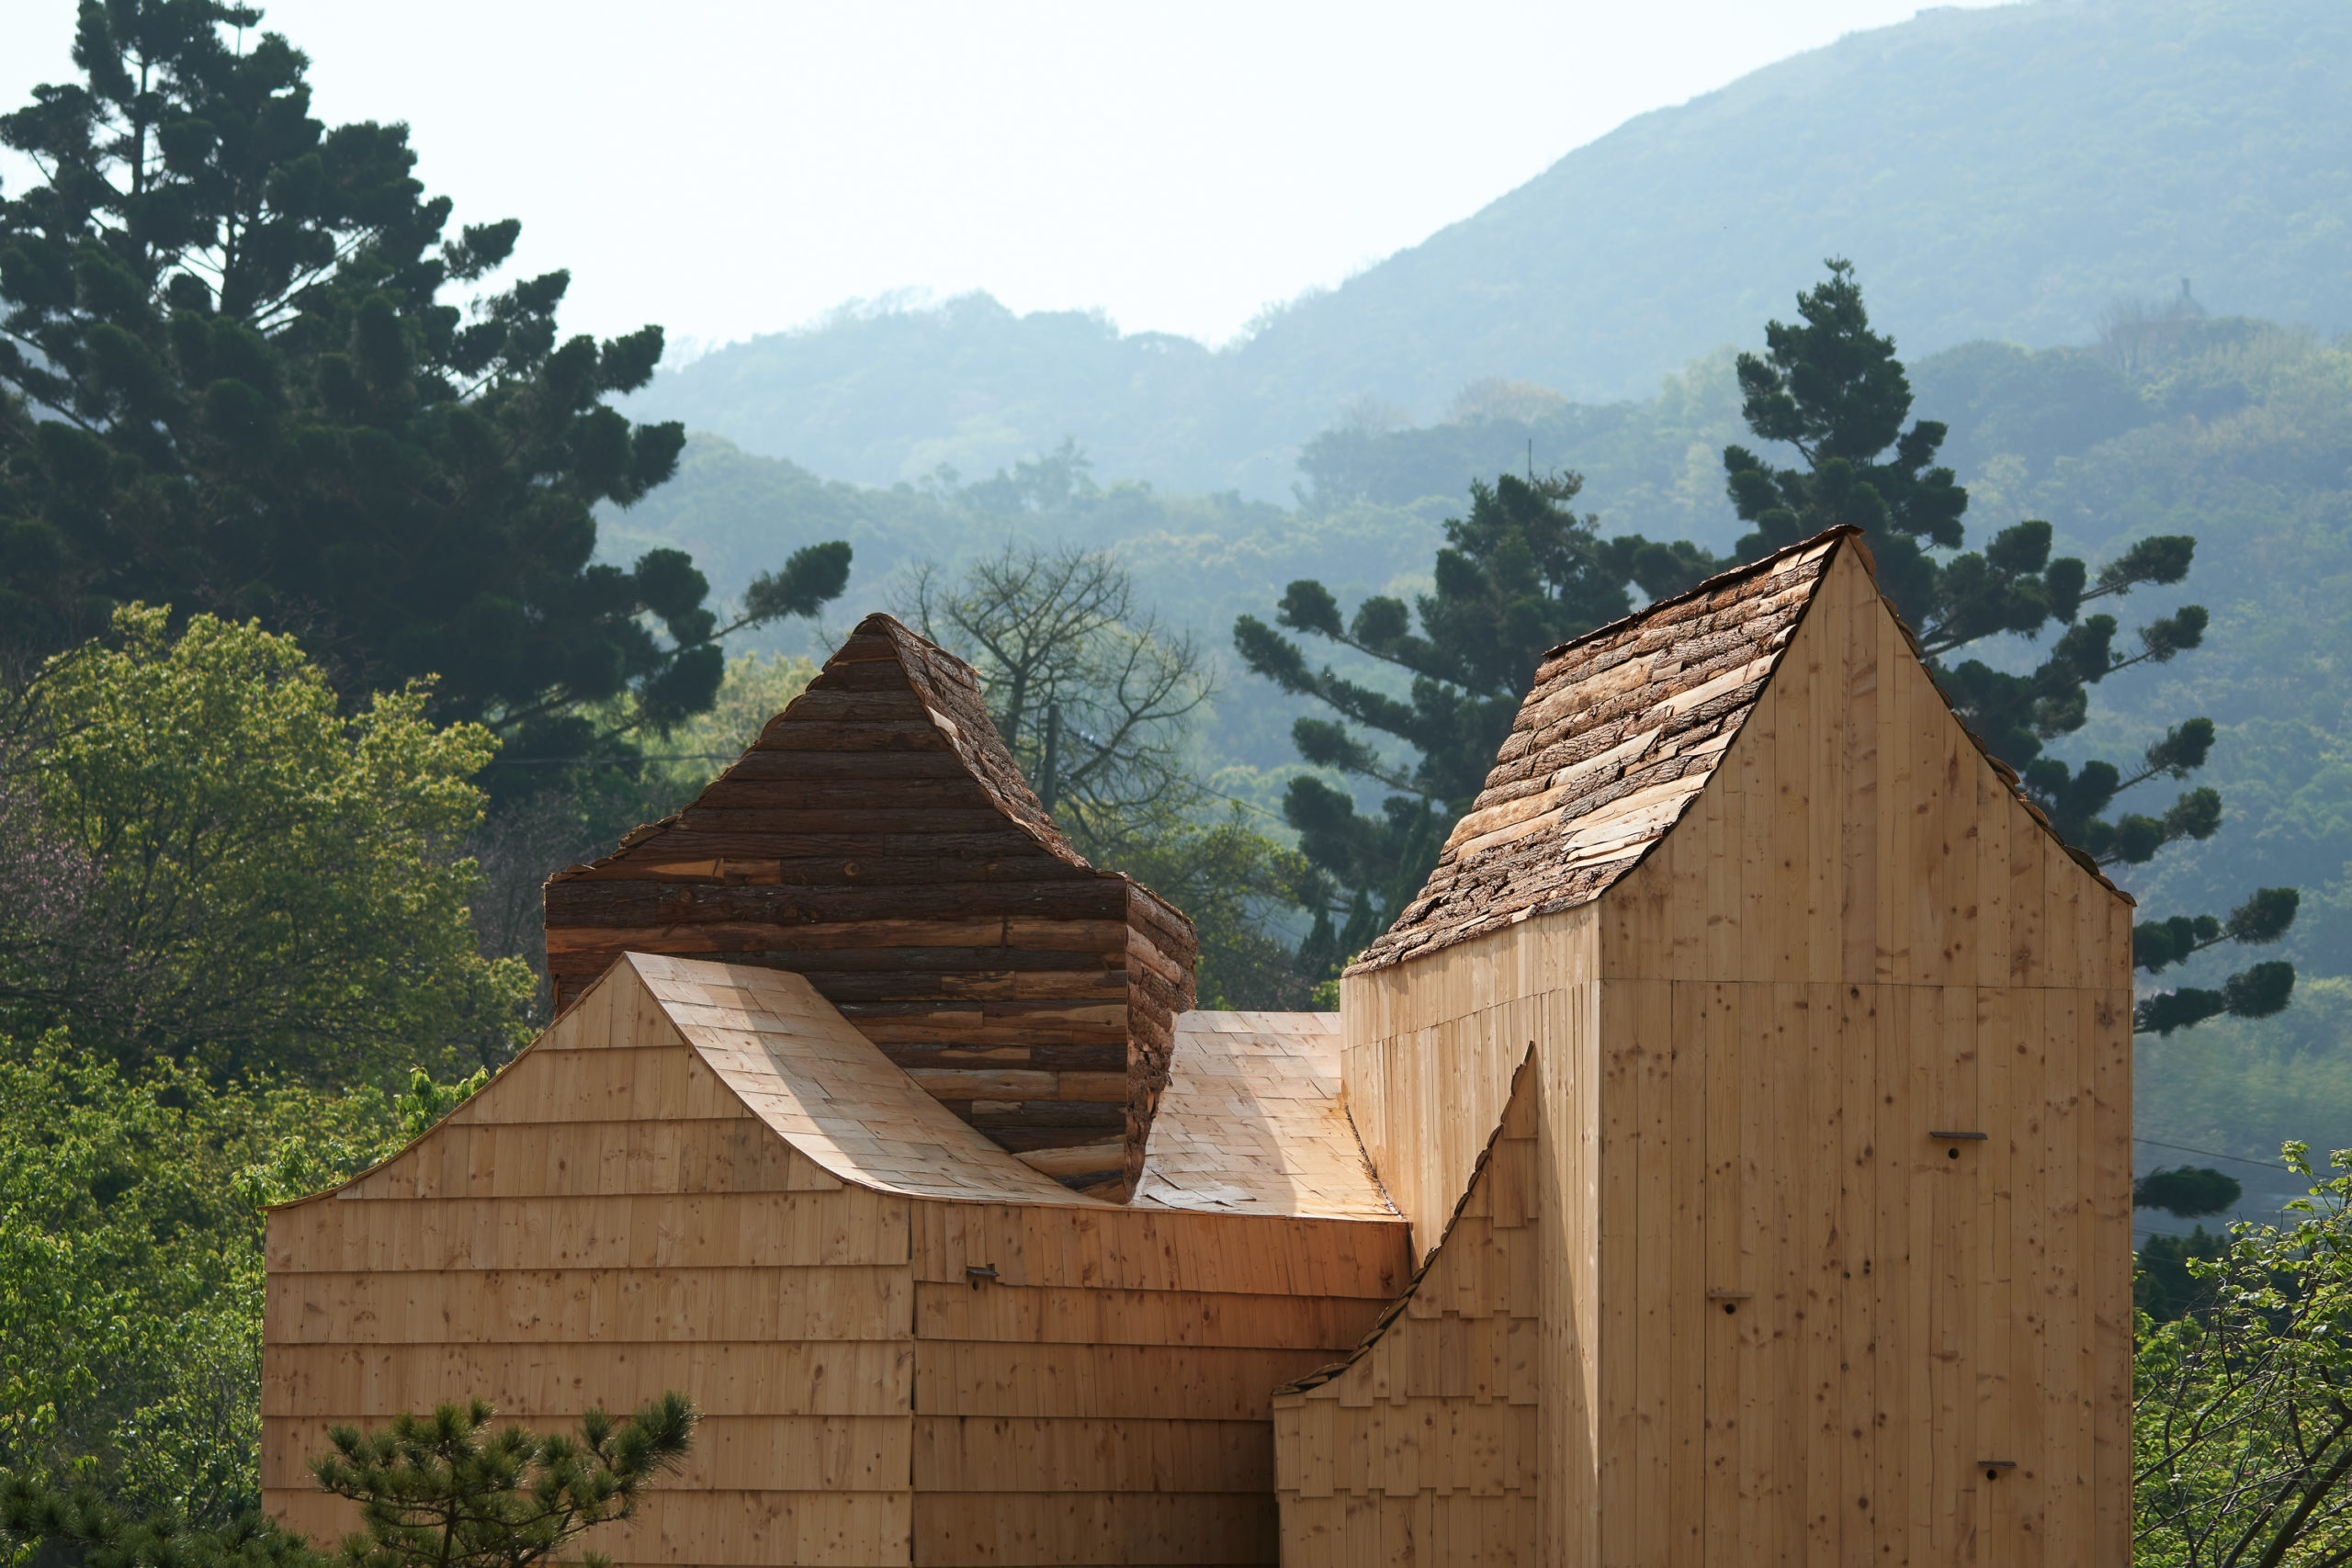 concave rooflines emphasize the various axes and complex geometry